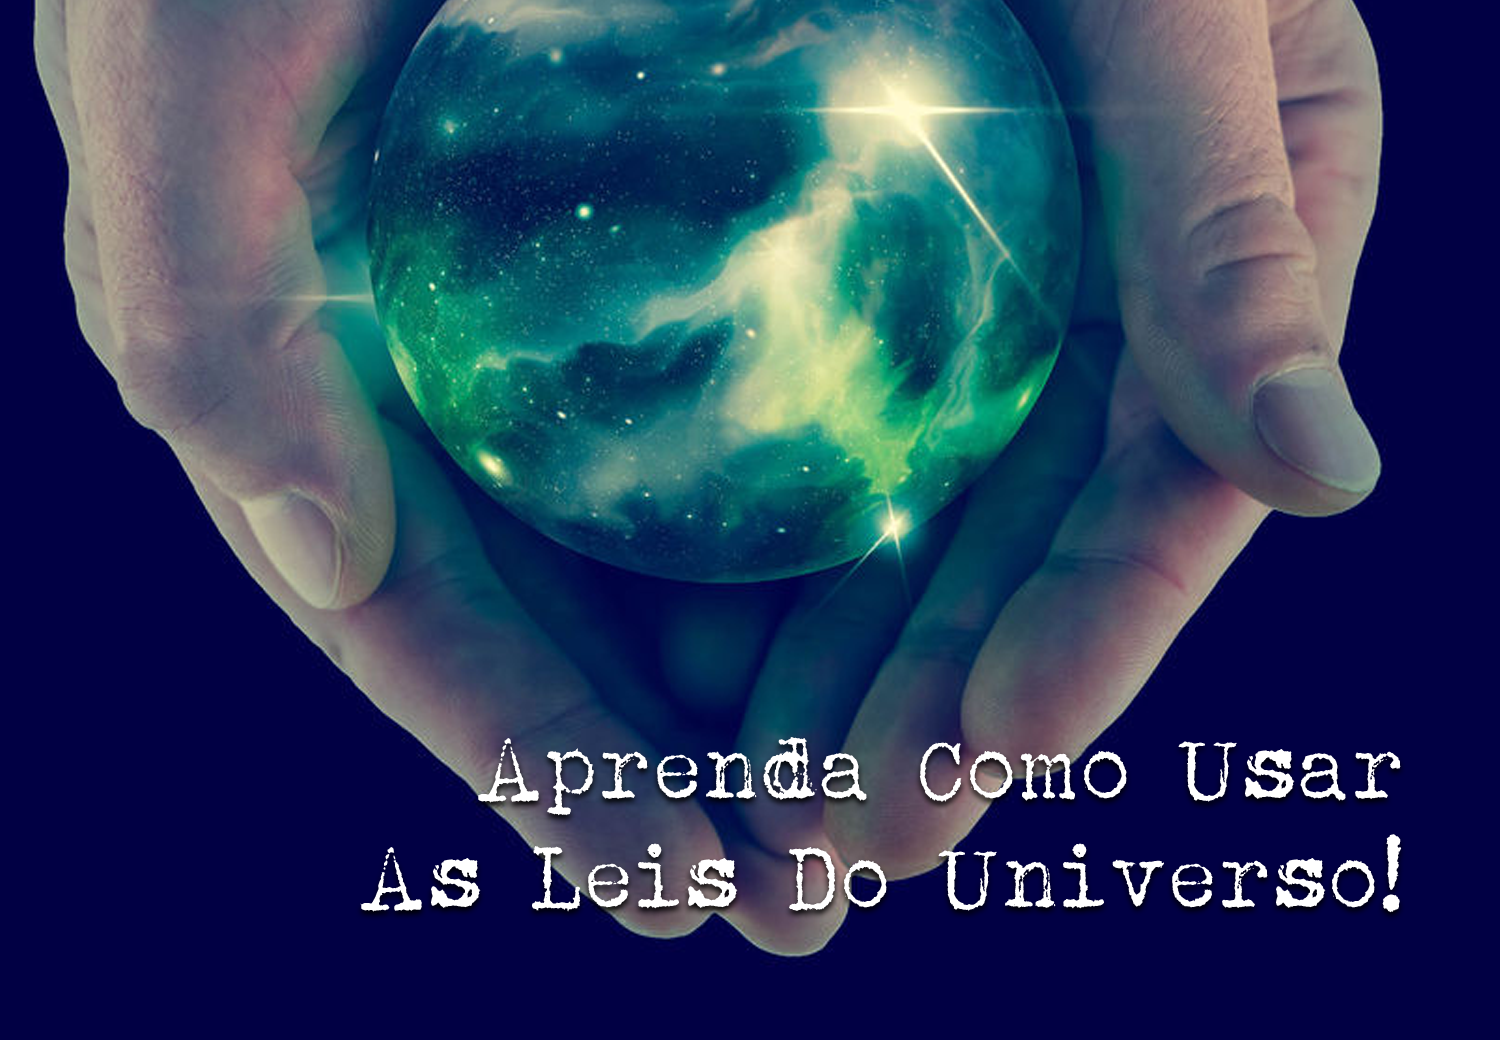 Aprenda Como Usar As Leis do Universo, E-book As Leis do Universo, Marcos Trombetta